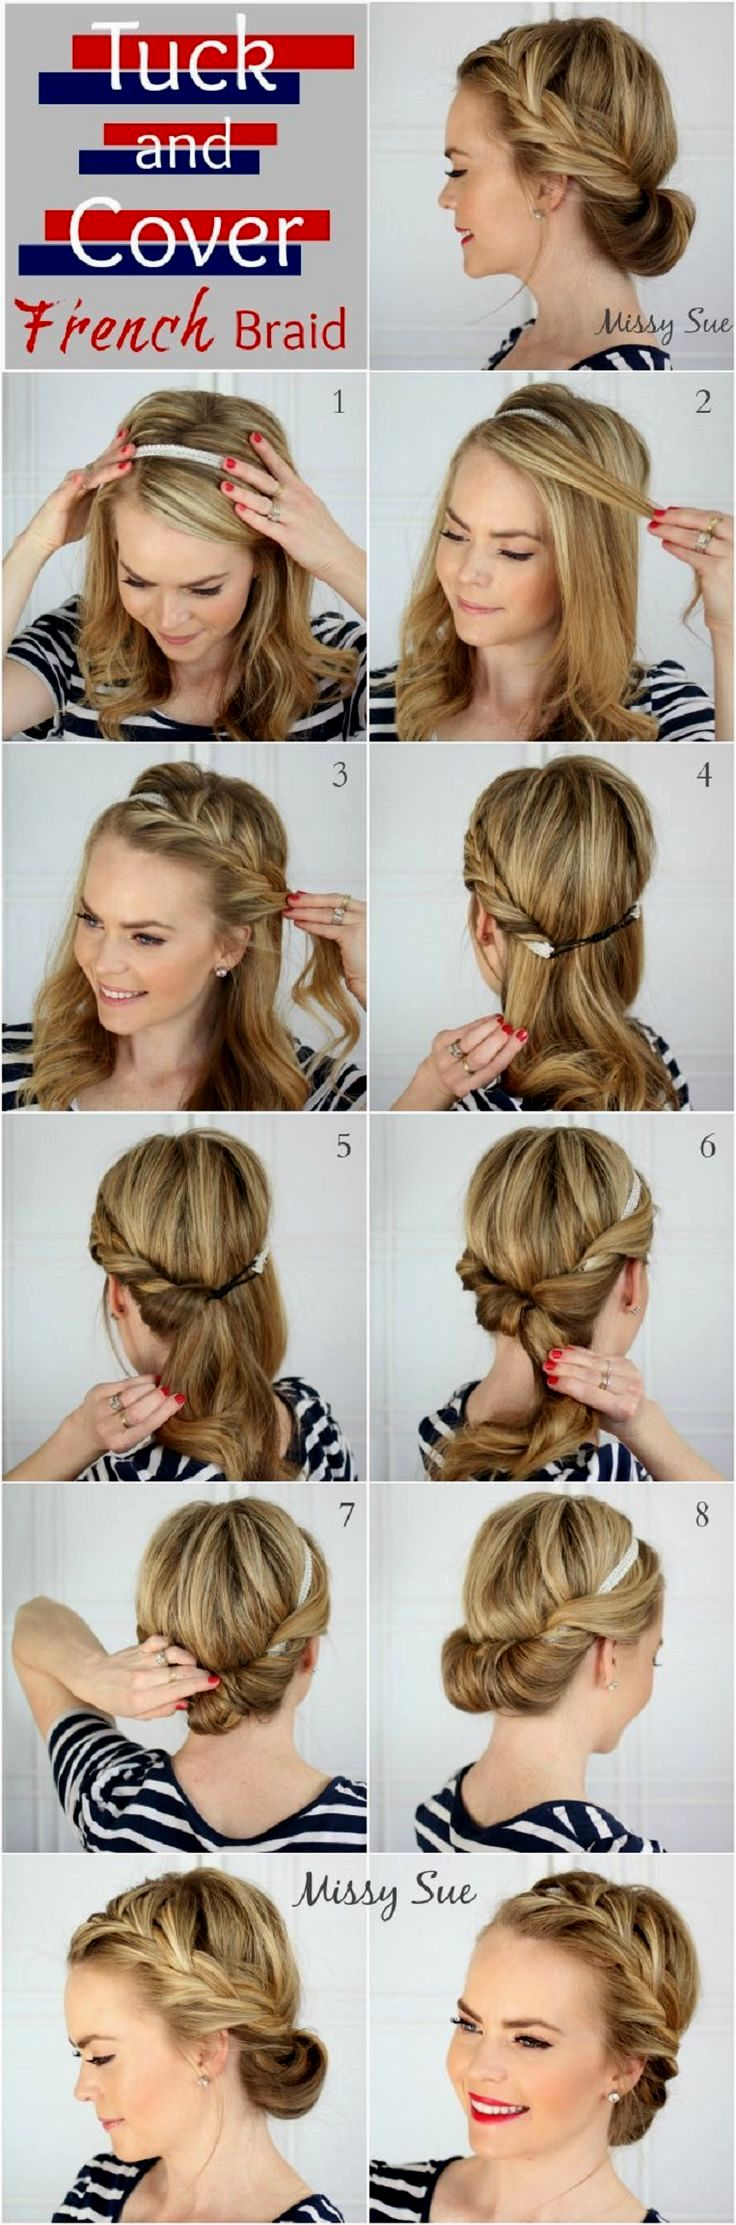 best of baby hairstyles girl portrait-Best baby hairstyles girl collection